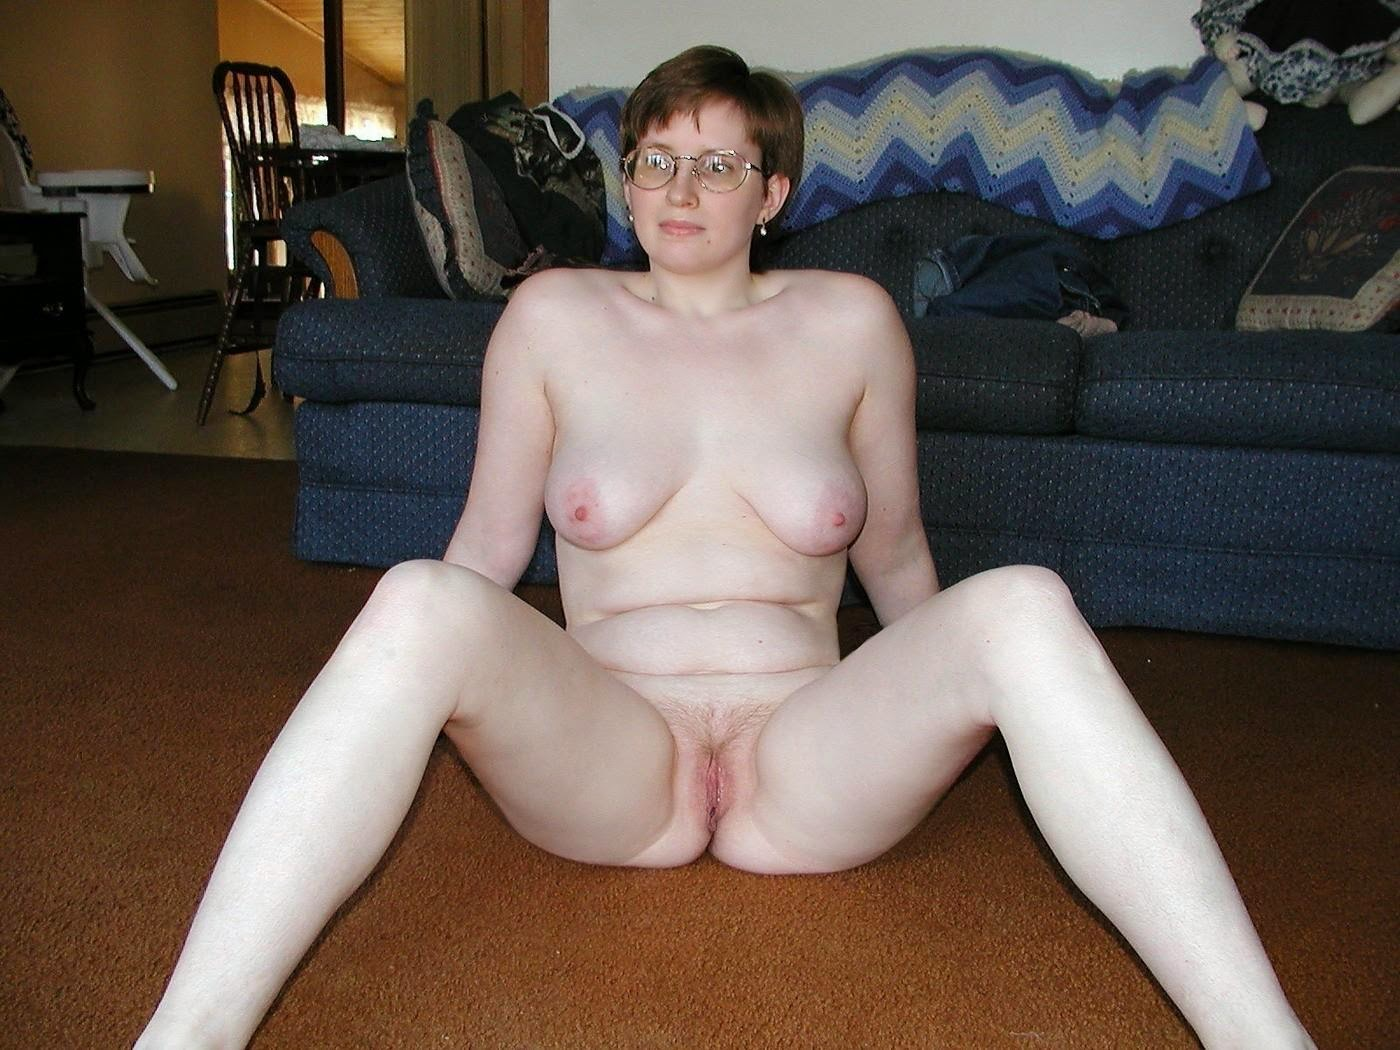 Amateur naked girl with nerd glasses